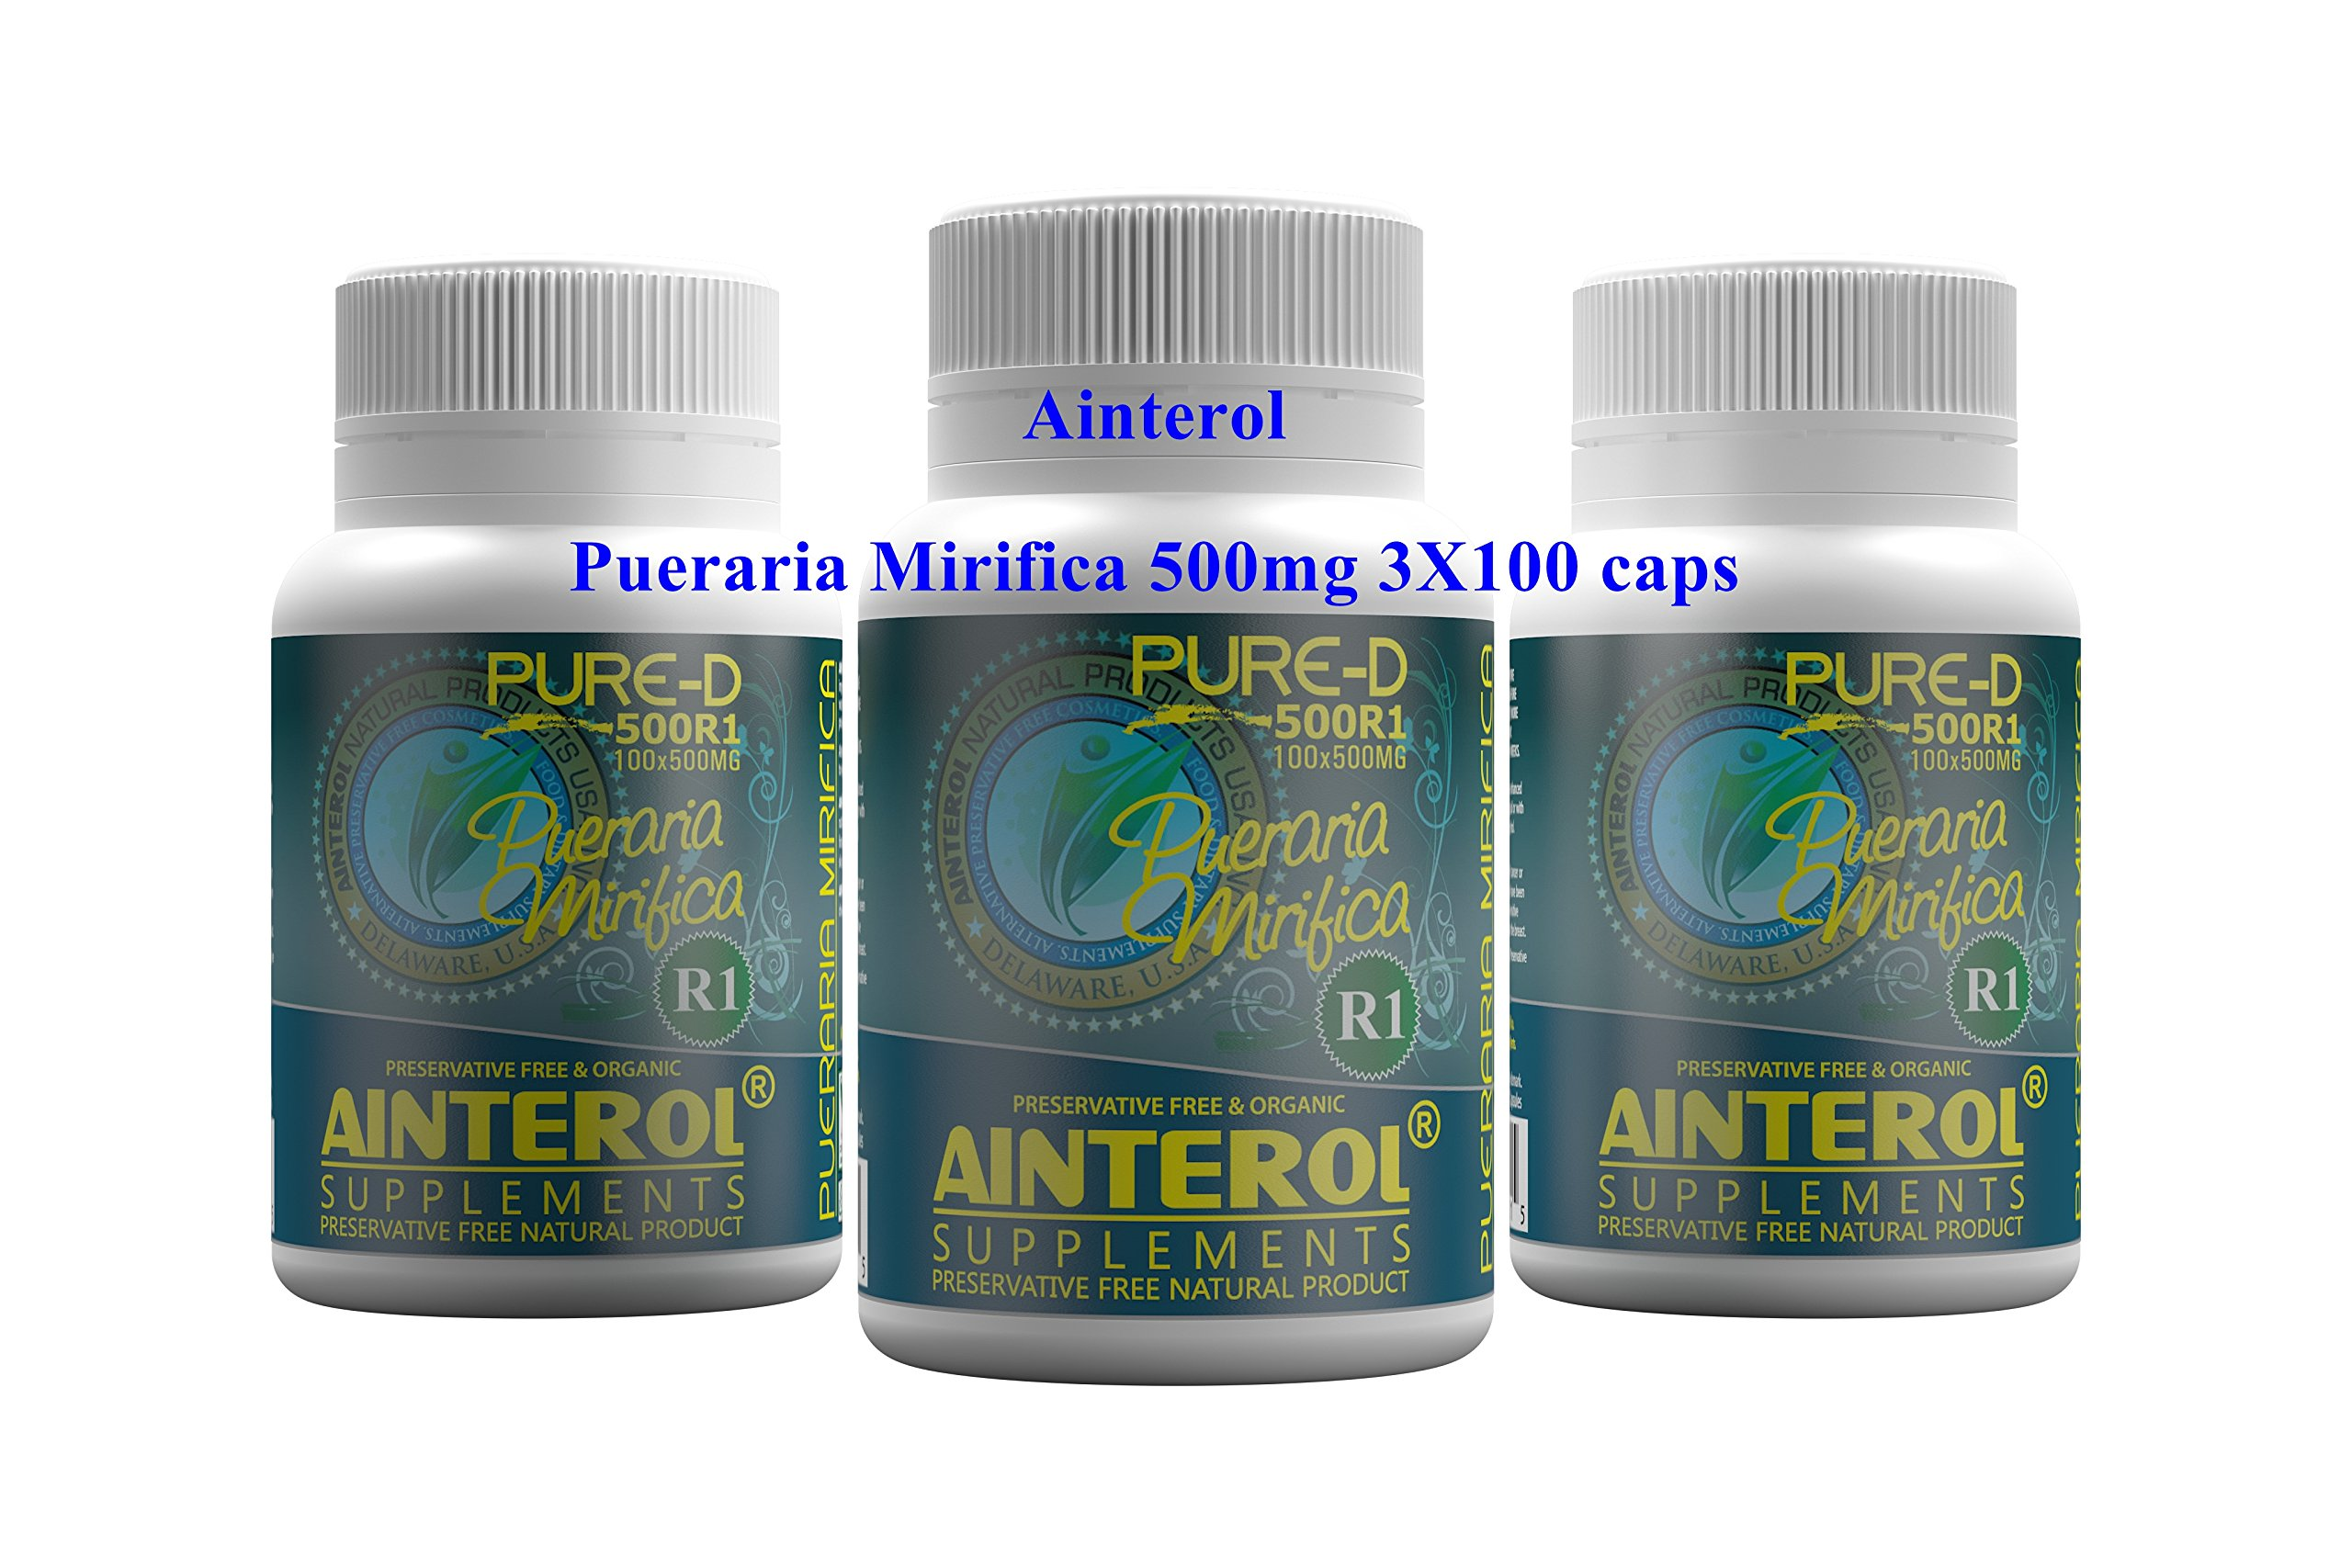 Ainterol Pueraria Mirifica 500pure R1 - 300 Capsules X 500mgs This Is the Newer Stronger Strain! by Ainterol